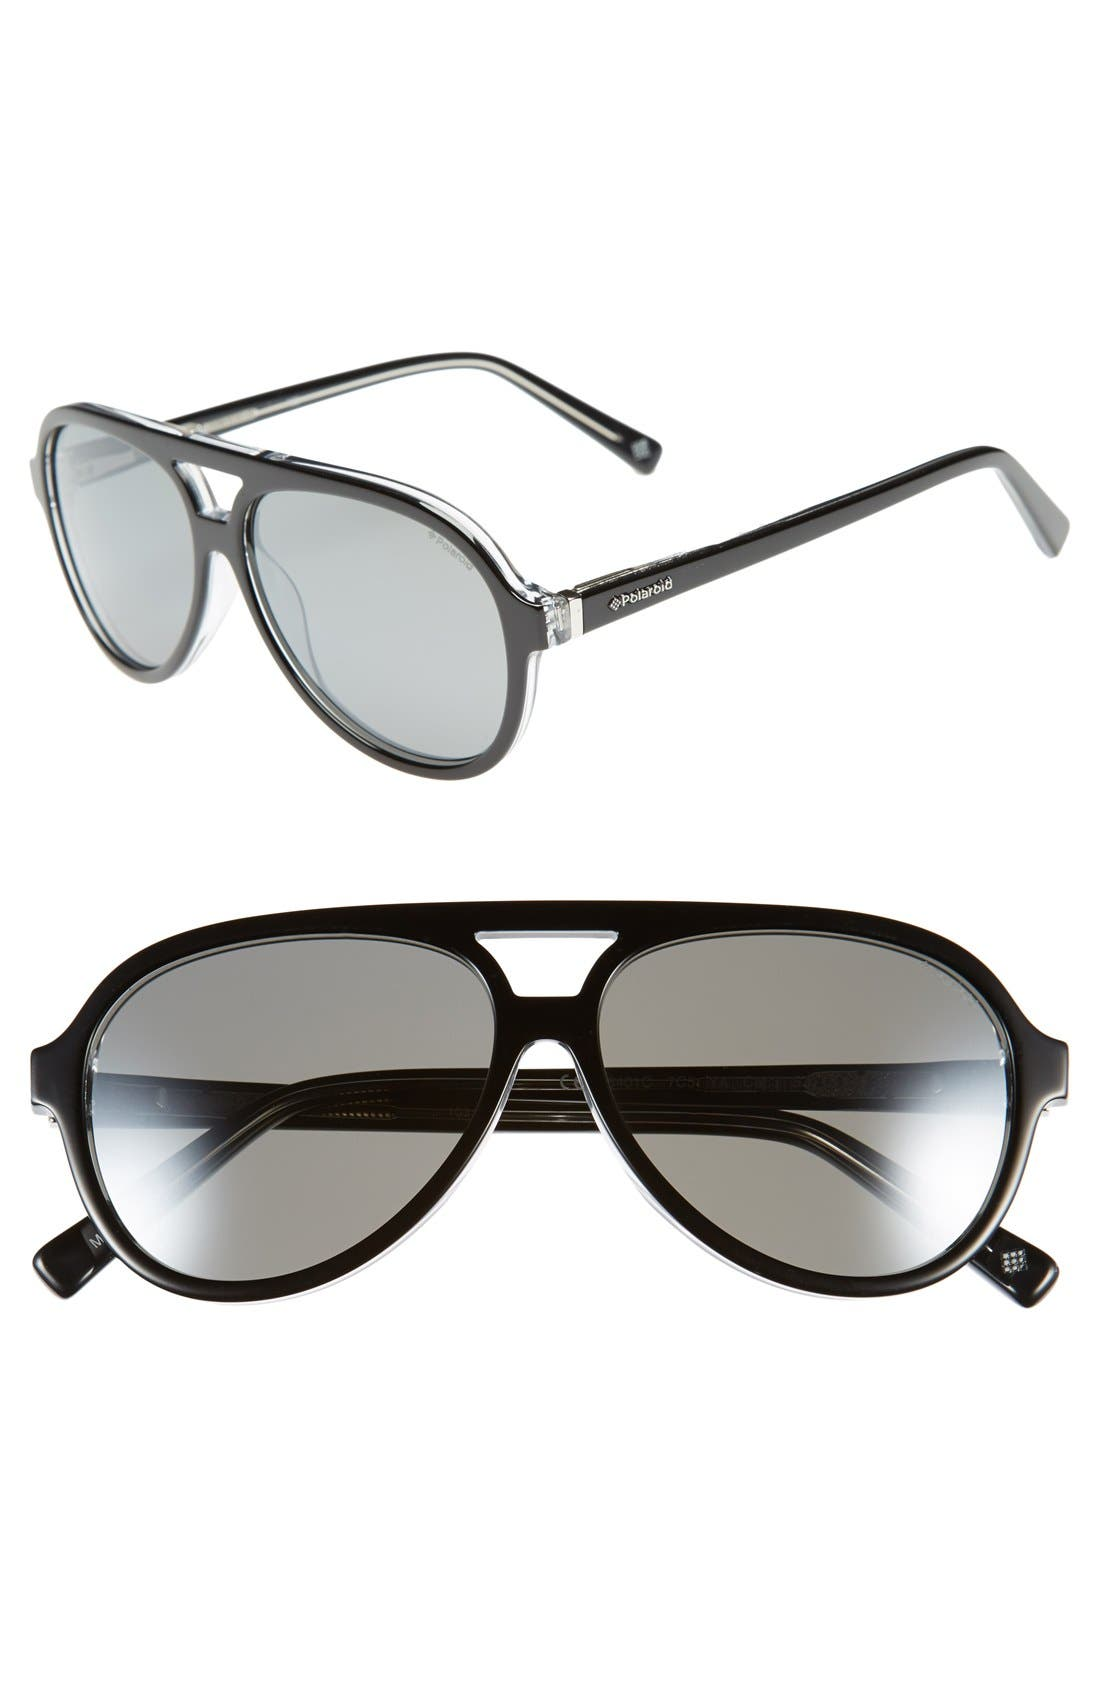 Main Image - Polaroid Eyewear 57mm Polarized Sunglasses